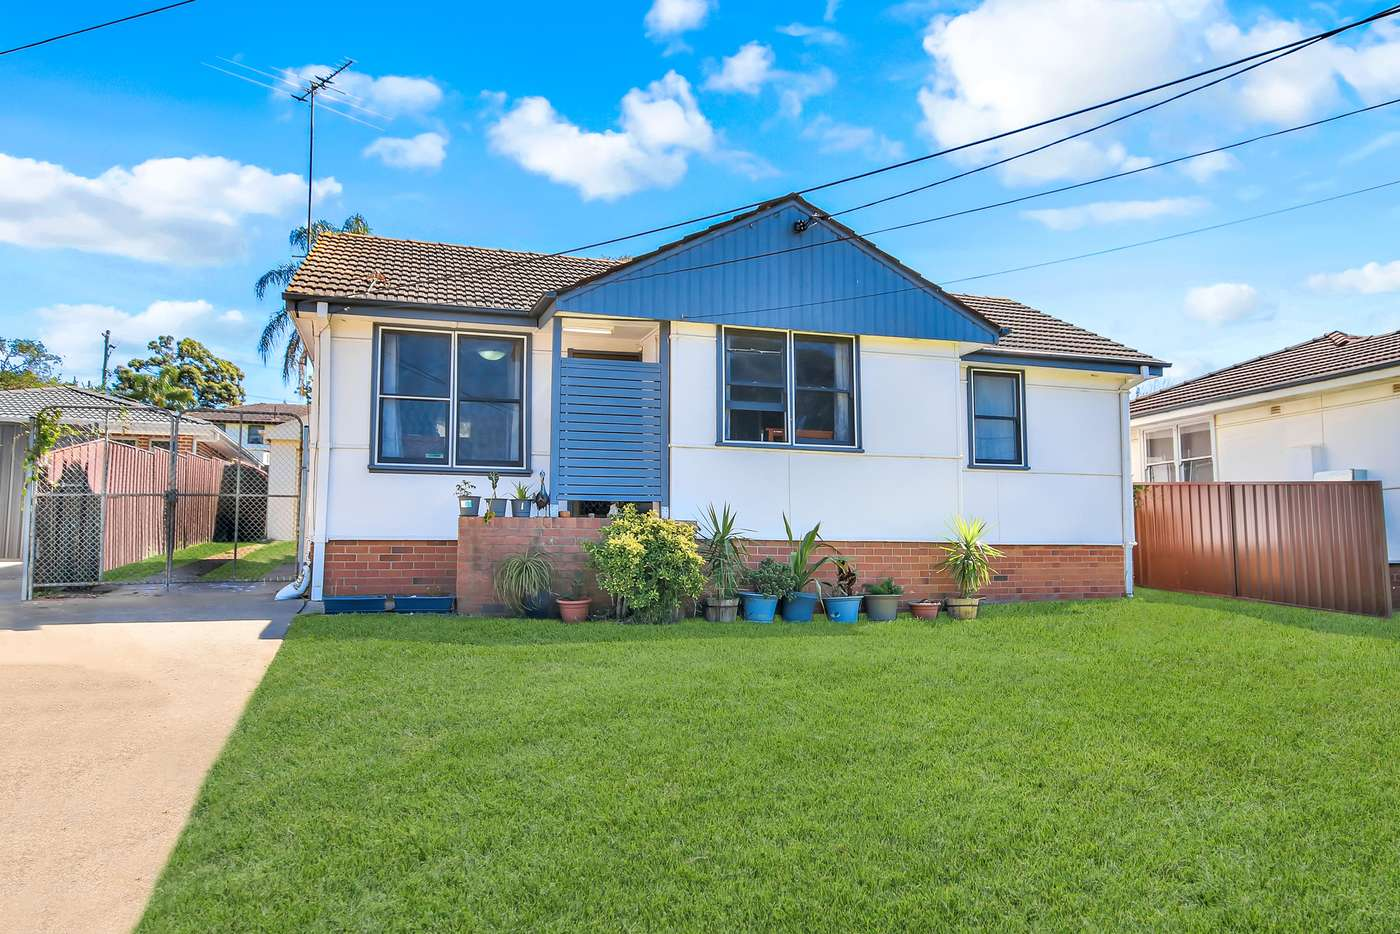 Main view of Homely house listing, 17 Robshaw Road, Marayong NSW 2148